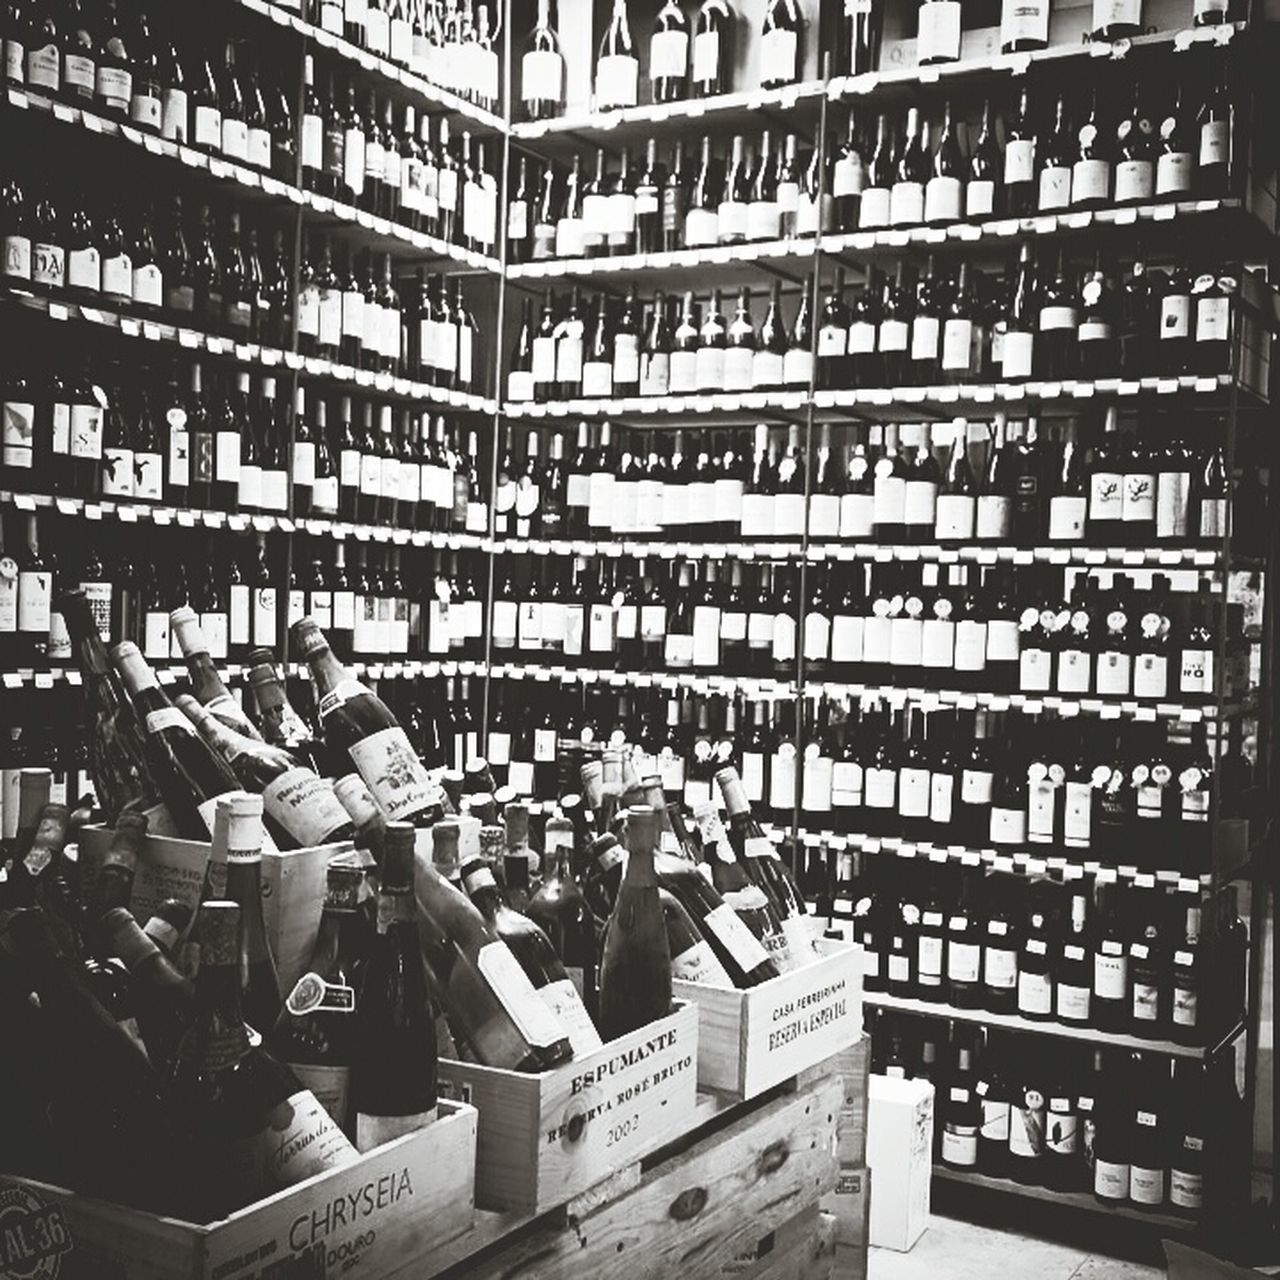 shelf, large group of objects, retail, bottle, indoors, abundance, library, choice, men, bookshelf, business, real people, women, day, architecture, supermarket, people, adult